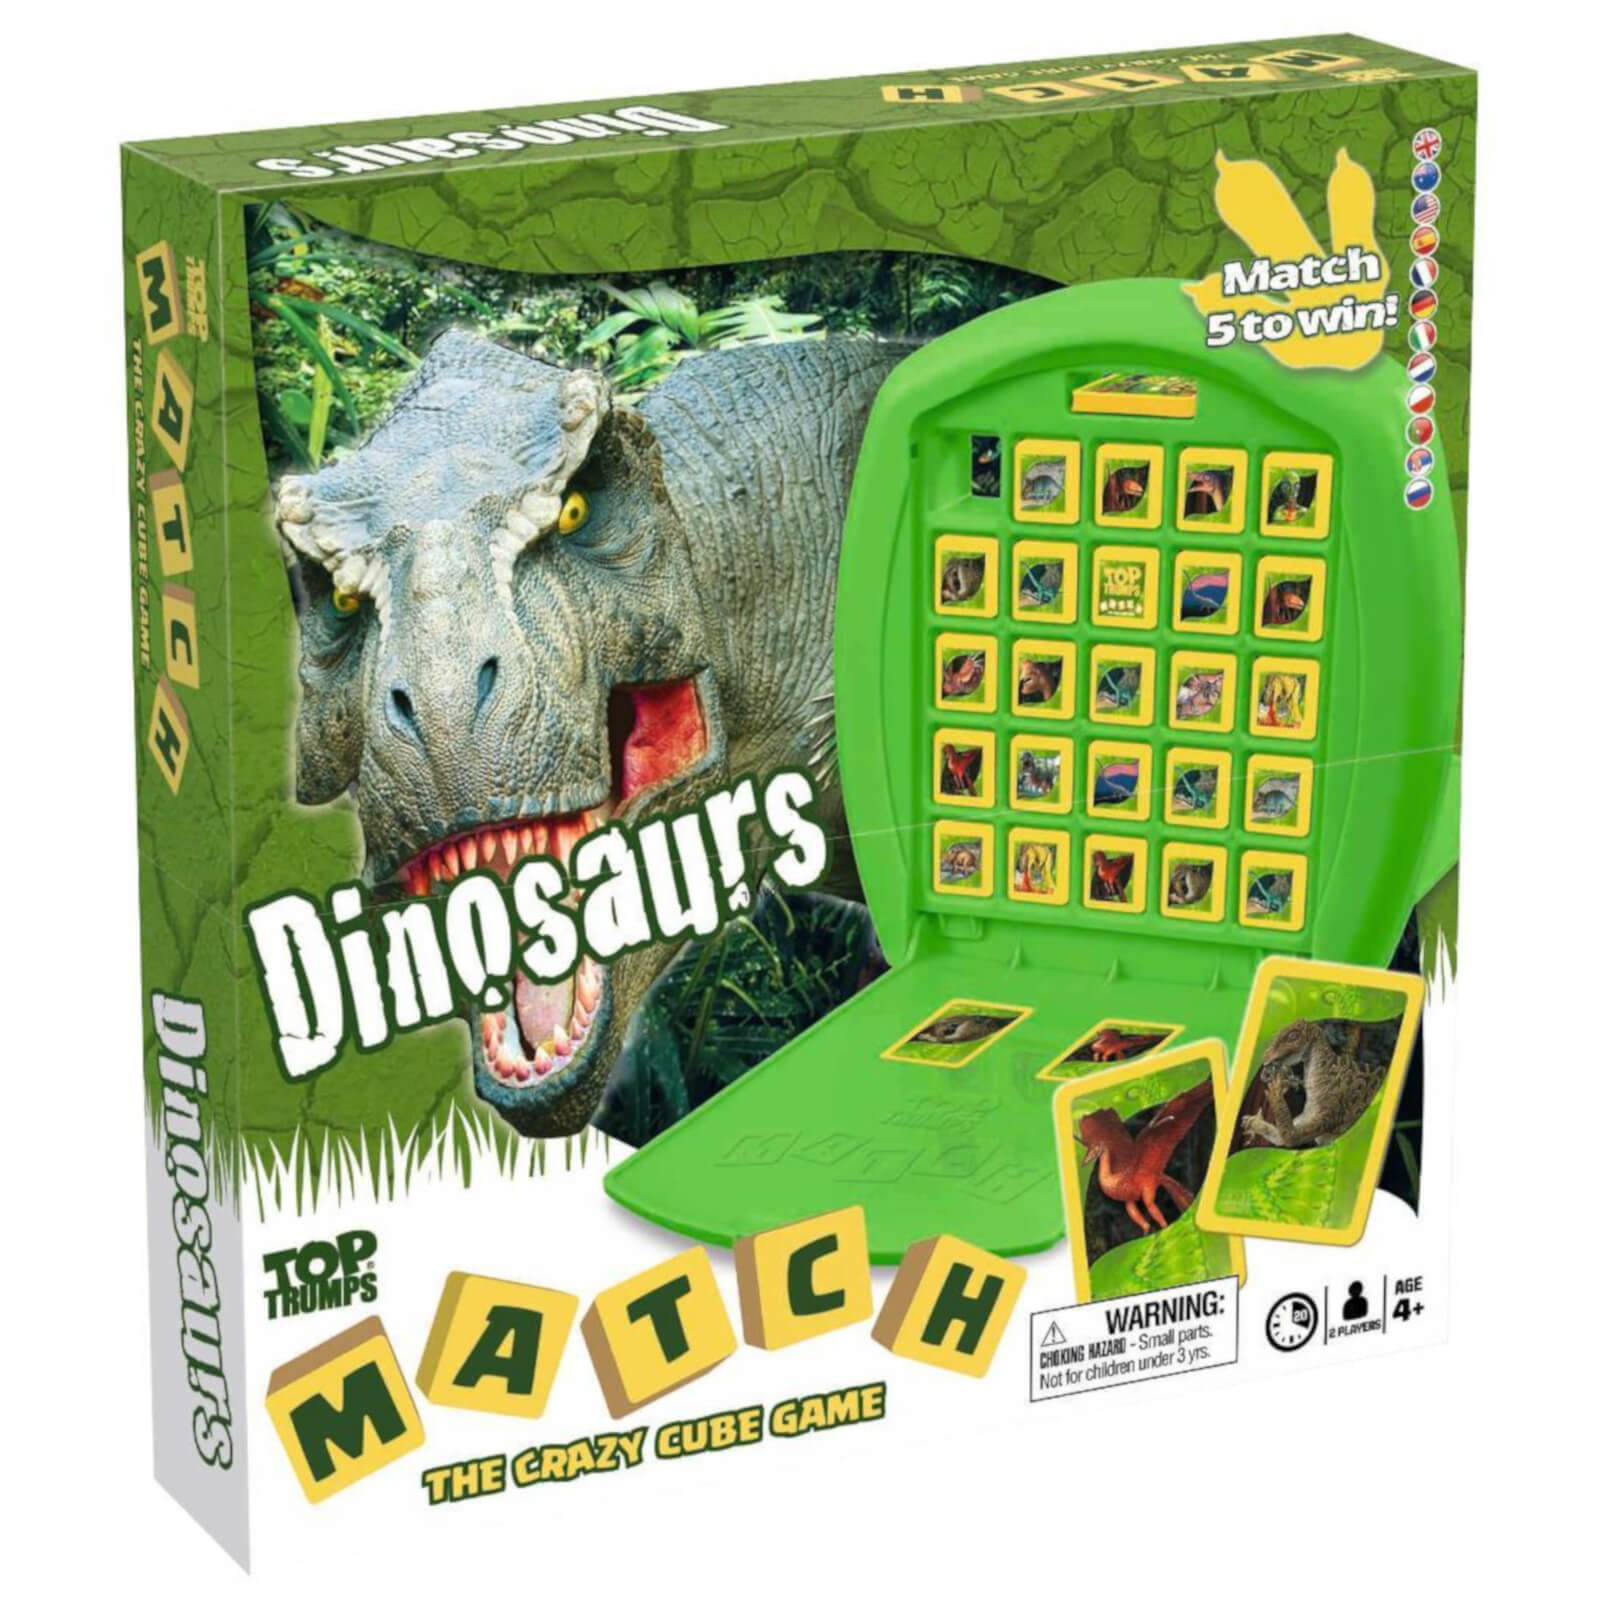 Image of Top Trumps Match Board Game - Dinosaurs Edition